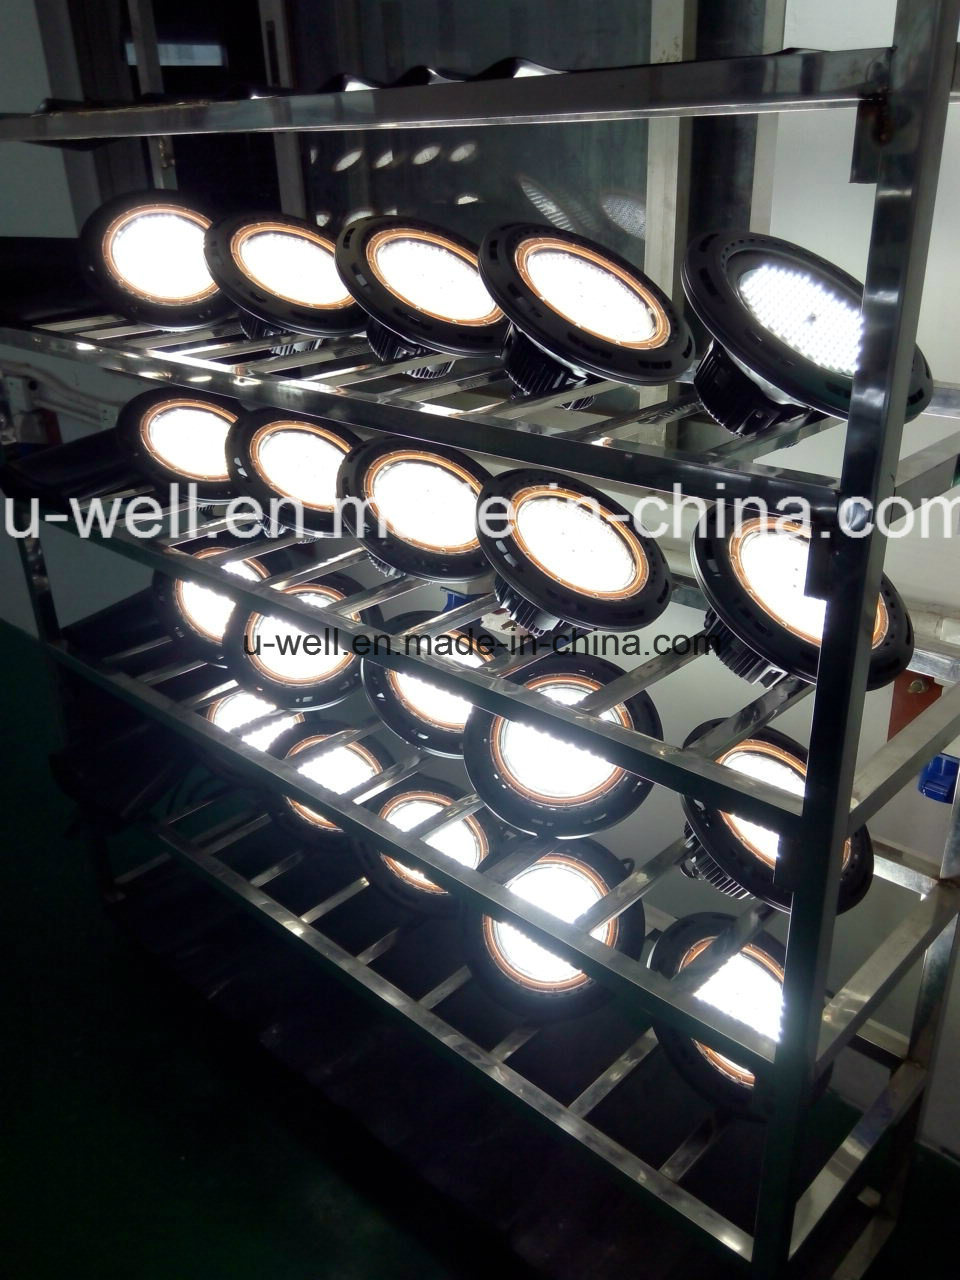 China Industrial UFO Highbay Lighting Lamp IP65 Waterproof 130lm/W Dimmable 240W 200W 160W 150W 100W LED High Bay Light